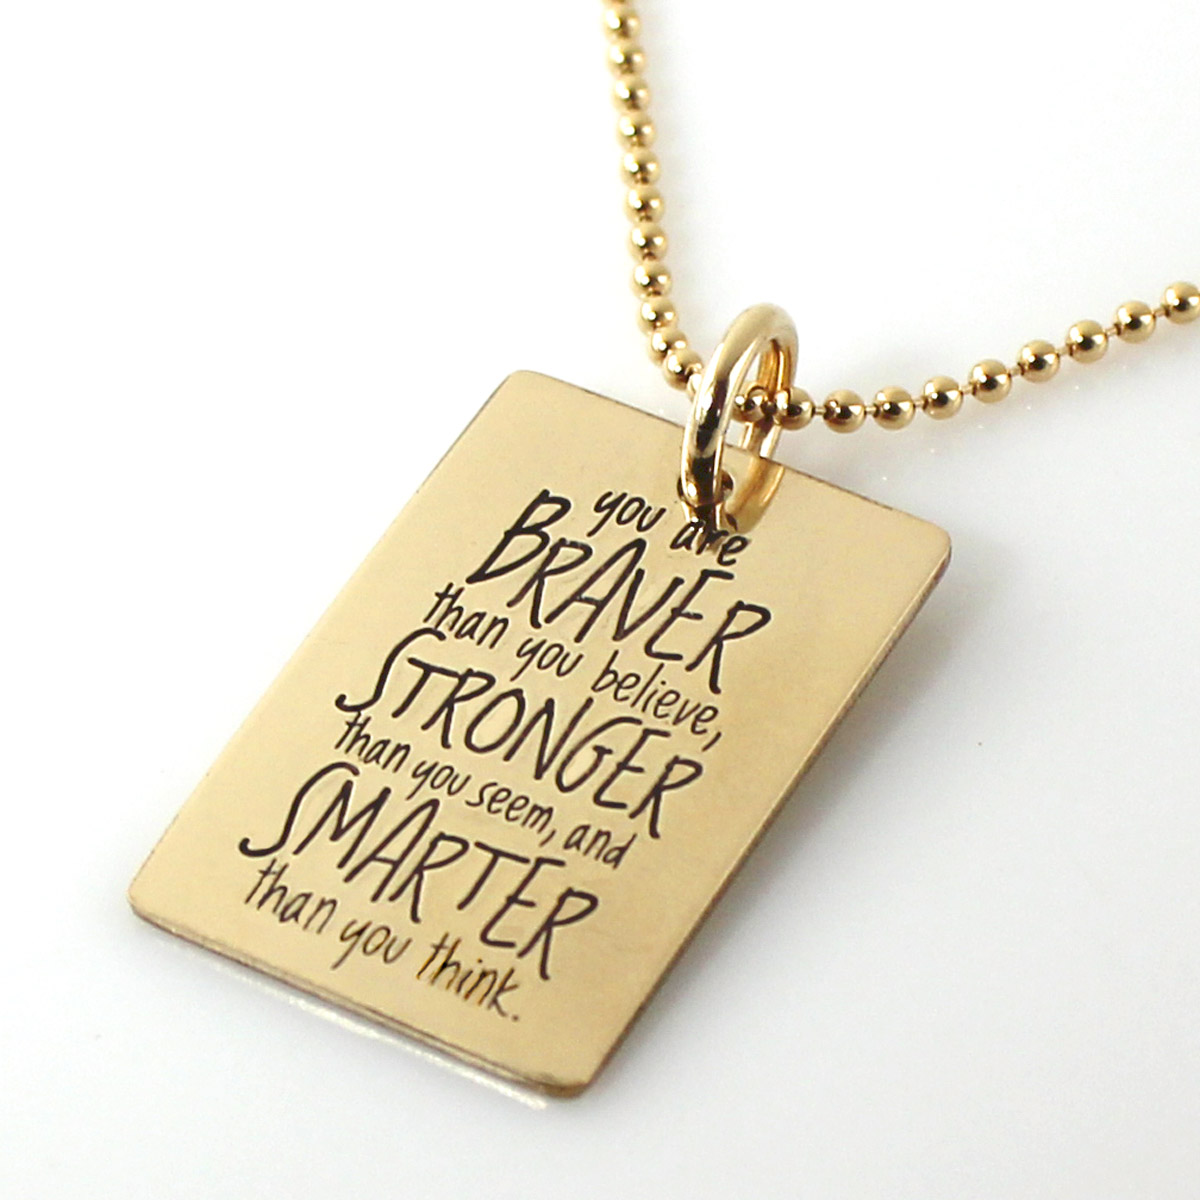 You are Braver... Gold-Filled Inspirational Quote Necklace